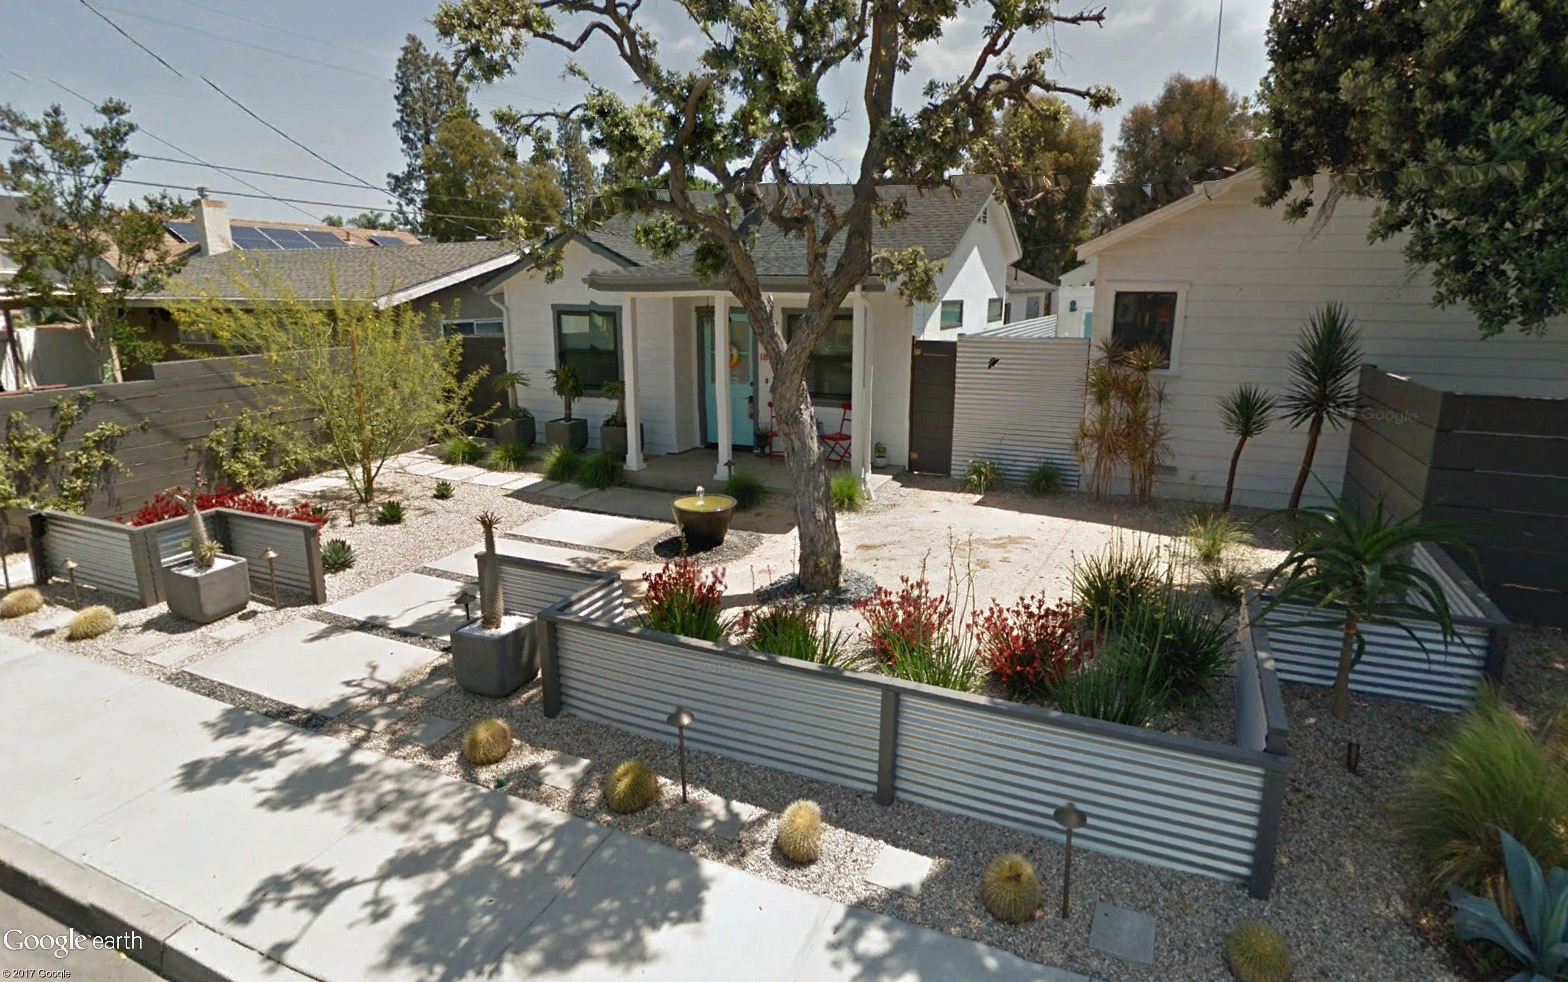 An image of a Fullerton house as one of the Finalists for the 2018 California Friendly Contest Garden